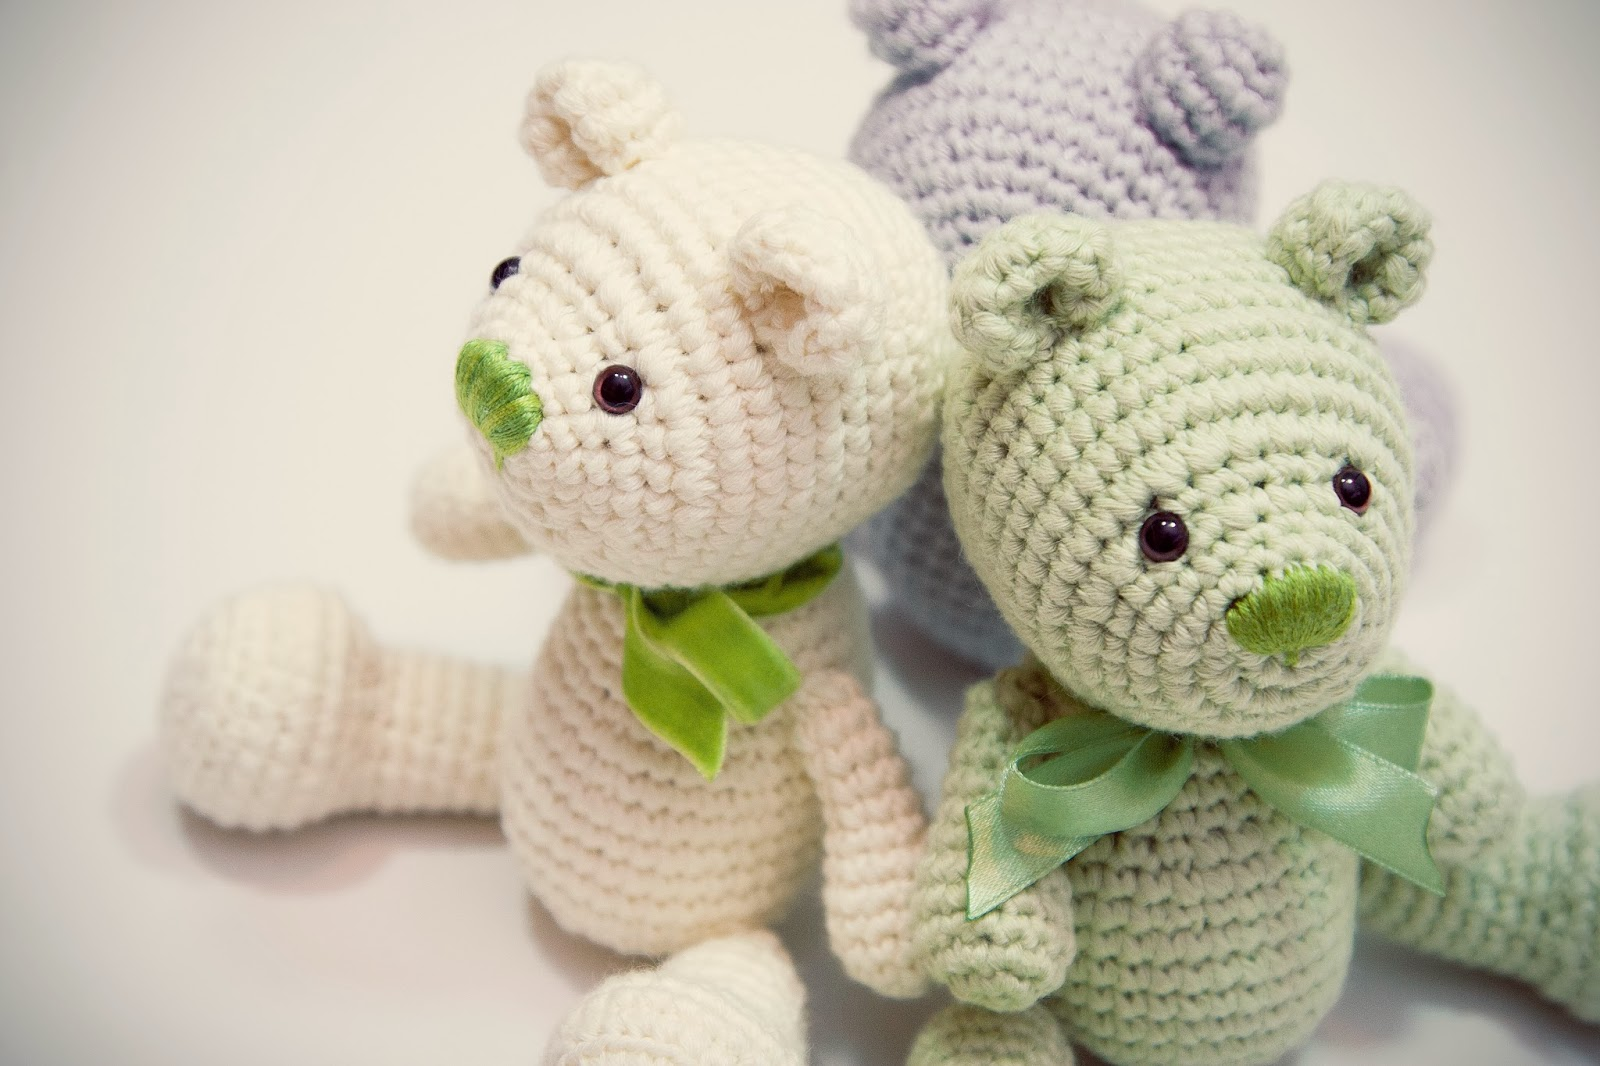 Crochet Pattern Amigurumi Bear : HAPPYAMIGURUMI: Little Amigurumi Teddy Bears - New Crochet ...